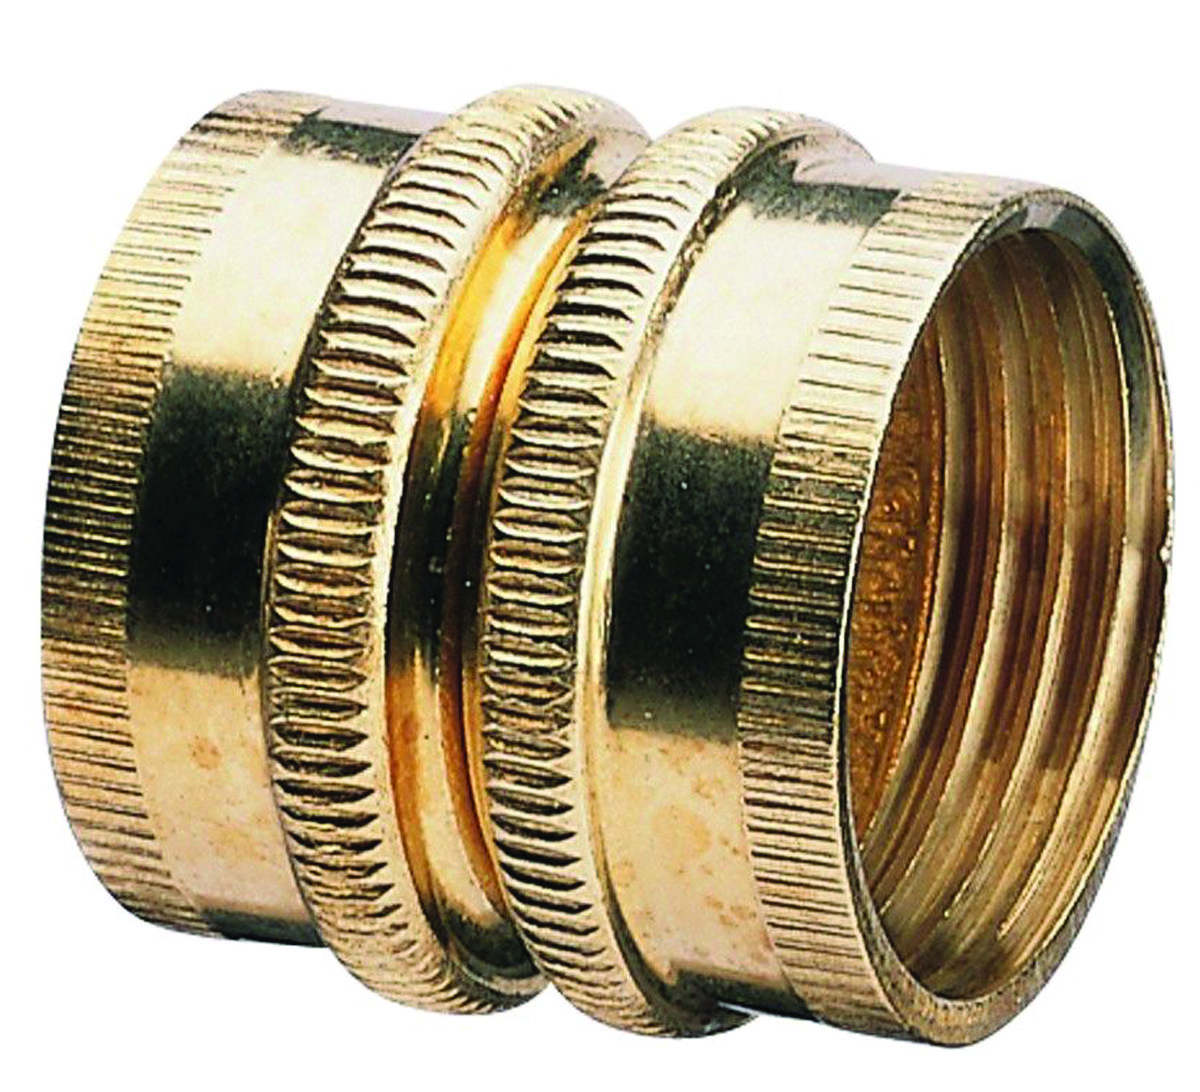 2 Shank 1.18 Hex Female Swivel Only 3//4 Hose Barb x 3//4 FGH Midland 30-507 Barstock Brass Garden Hose Coupling